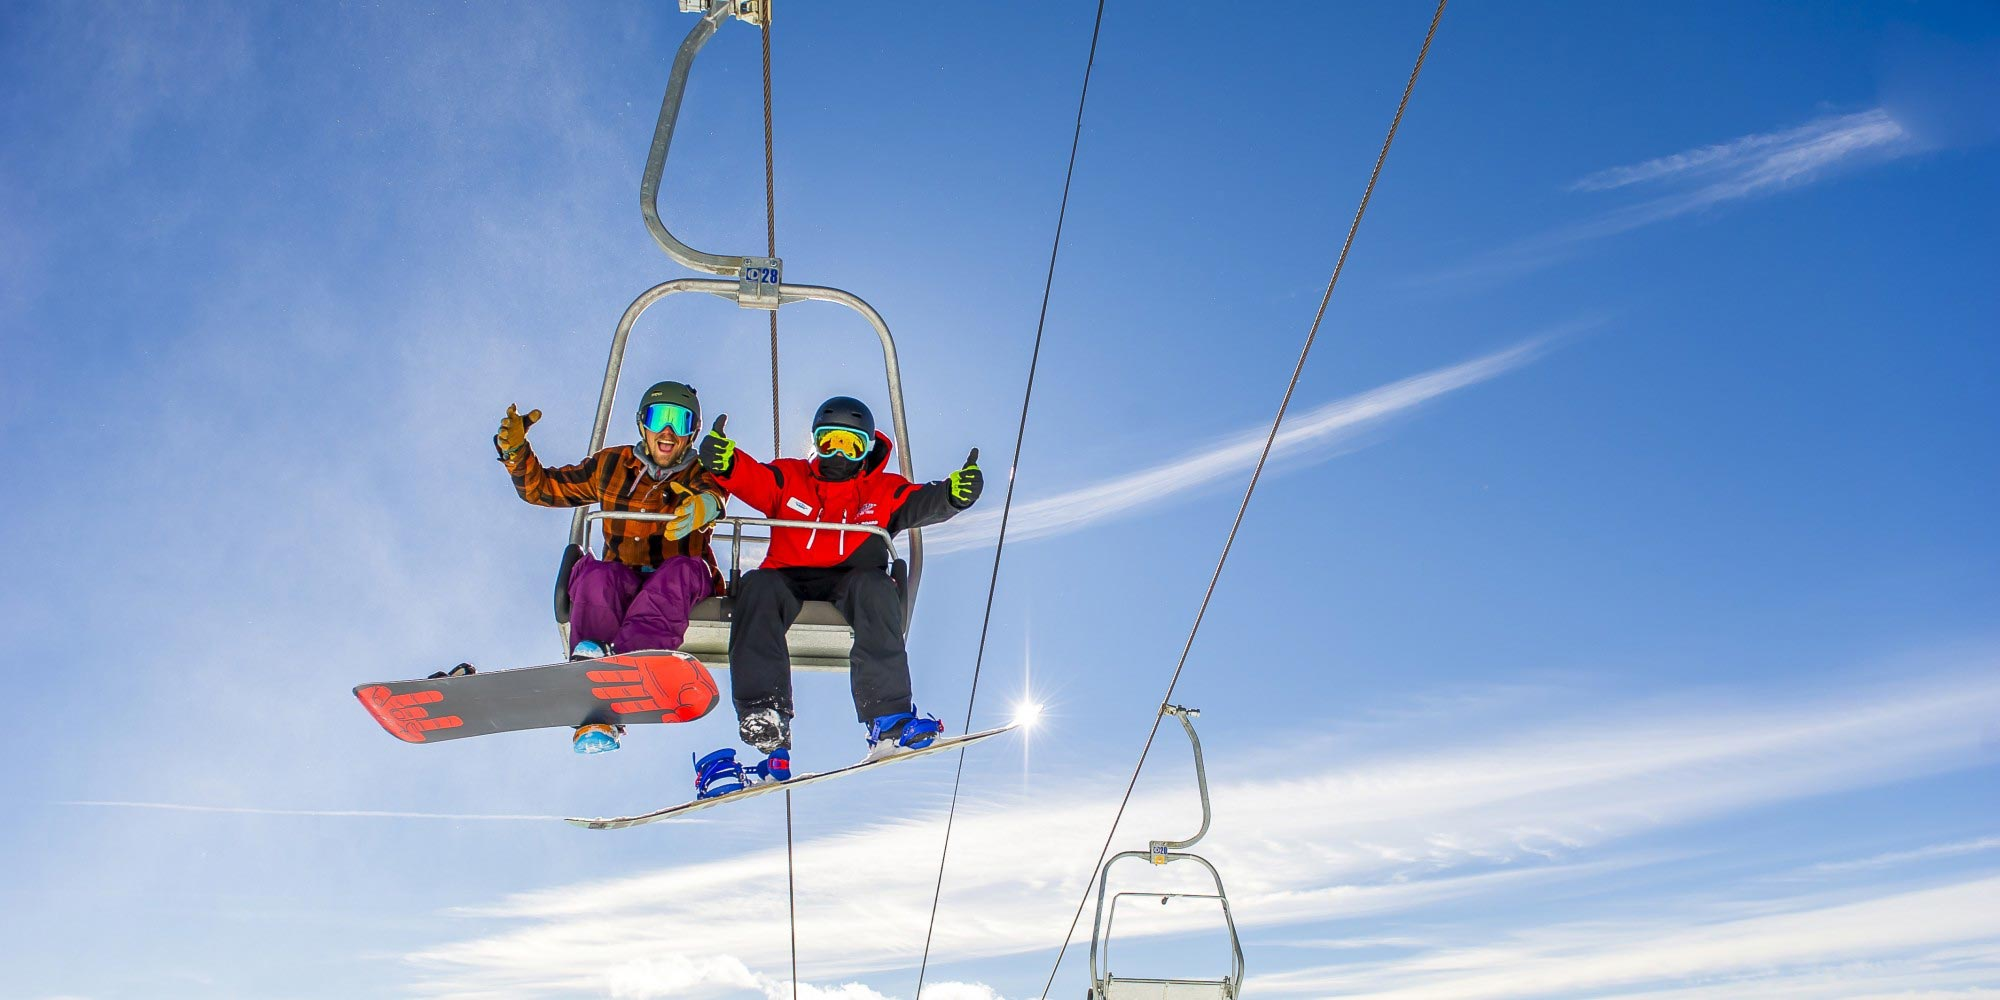 Snowboarders-on-chair-lift-SM